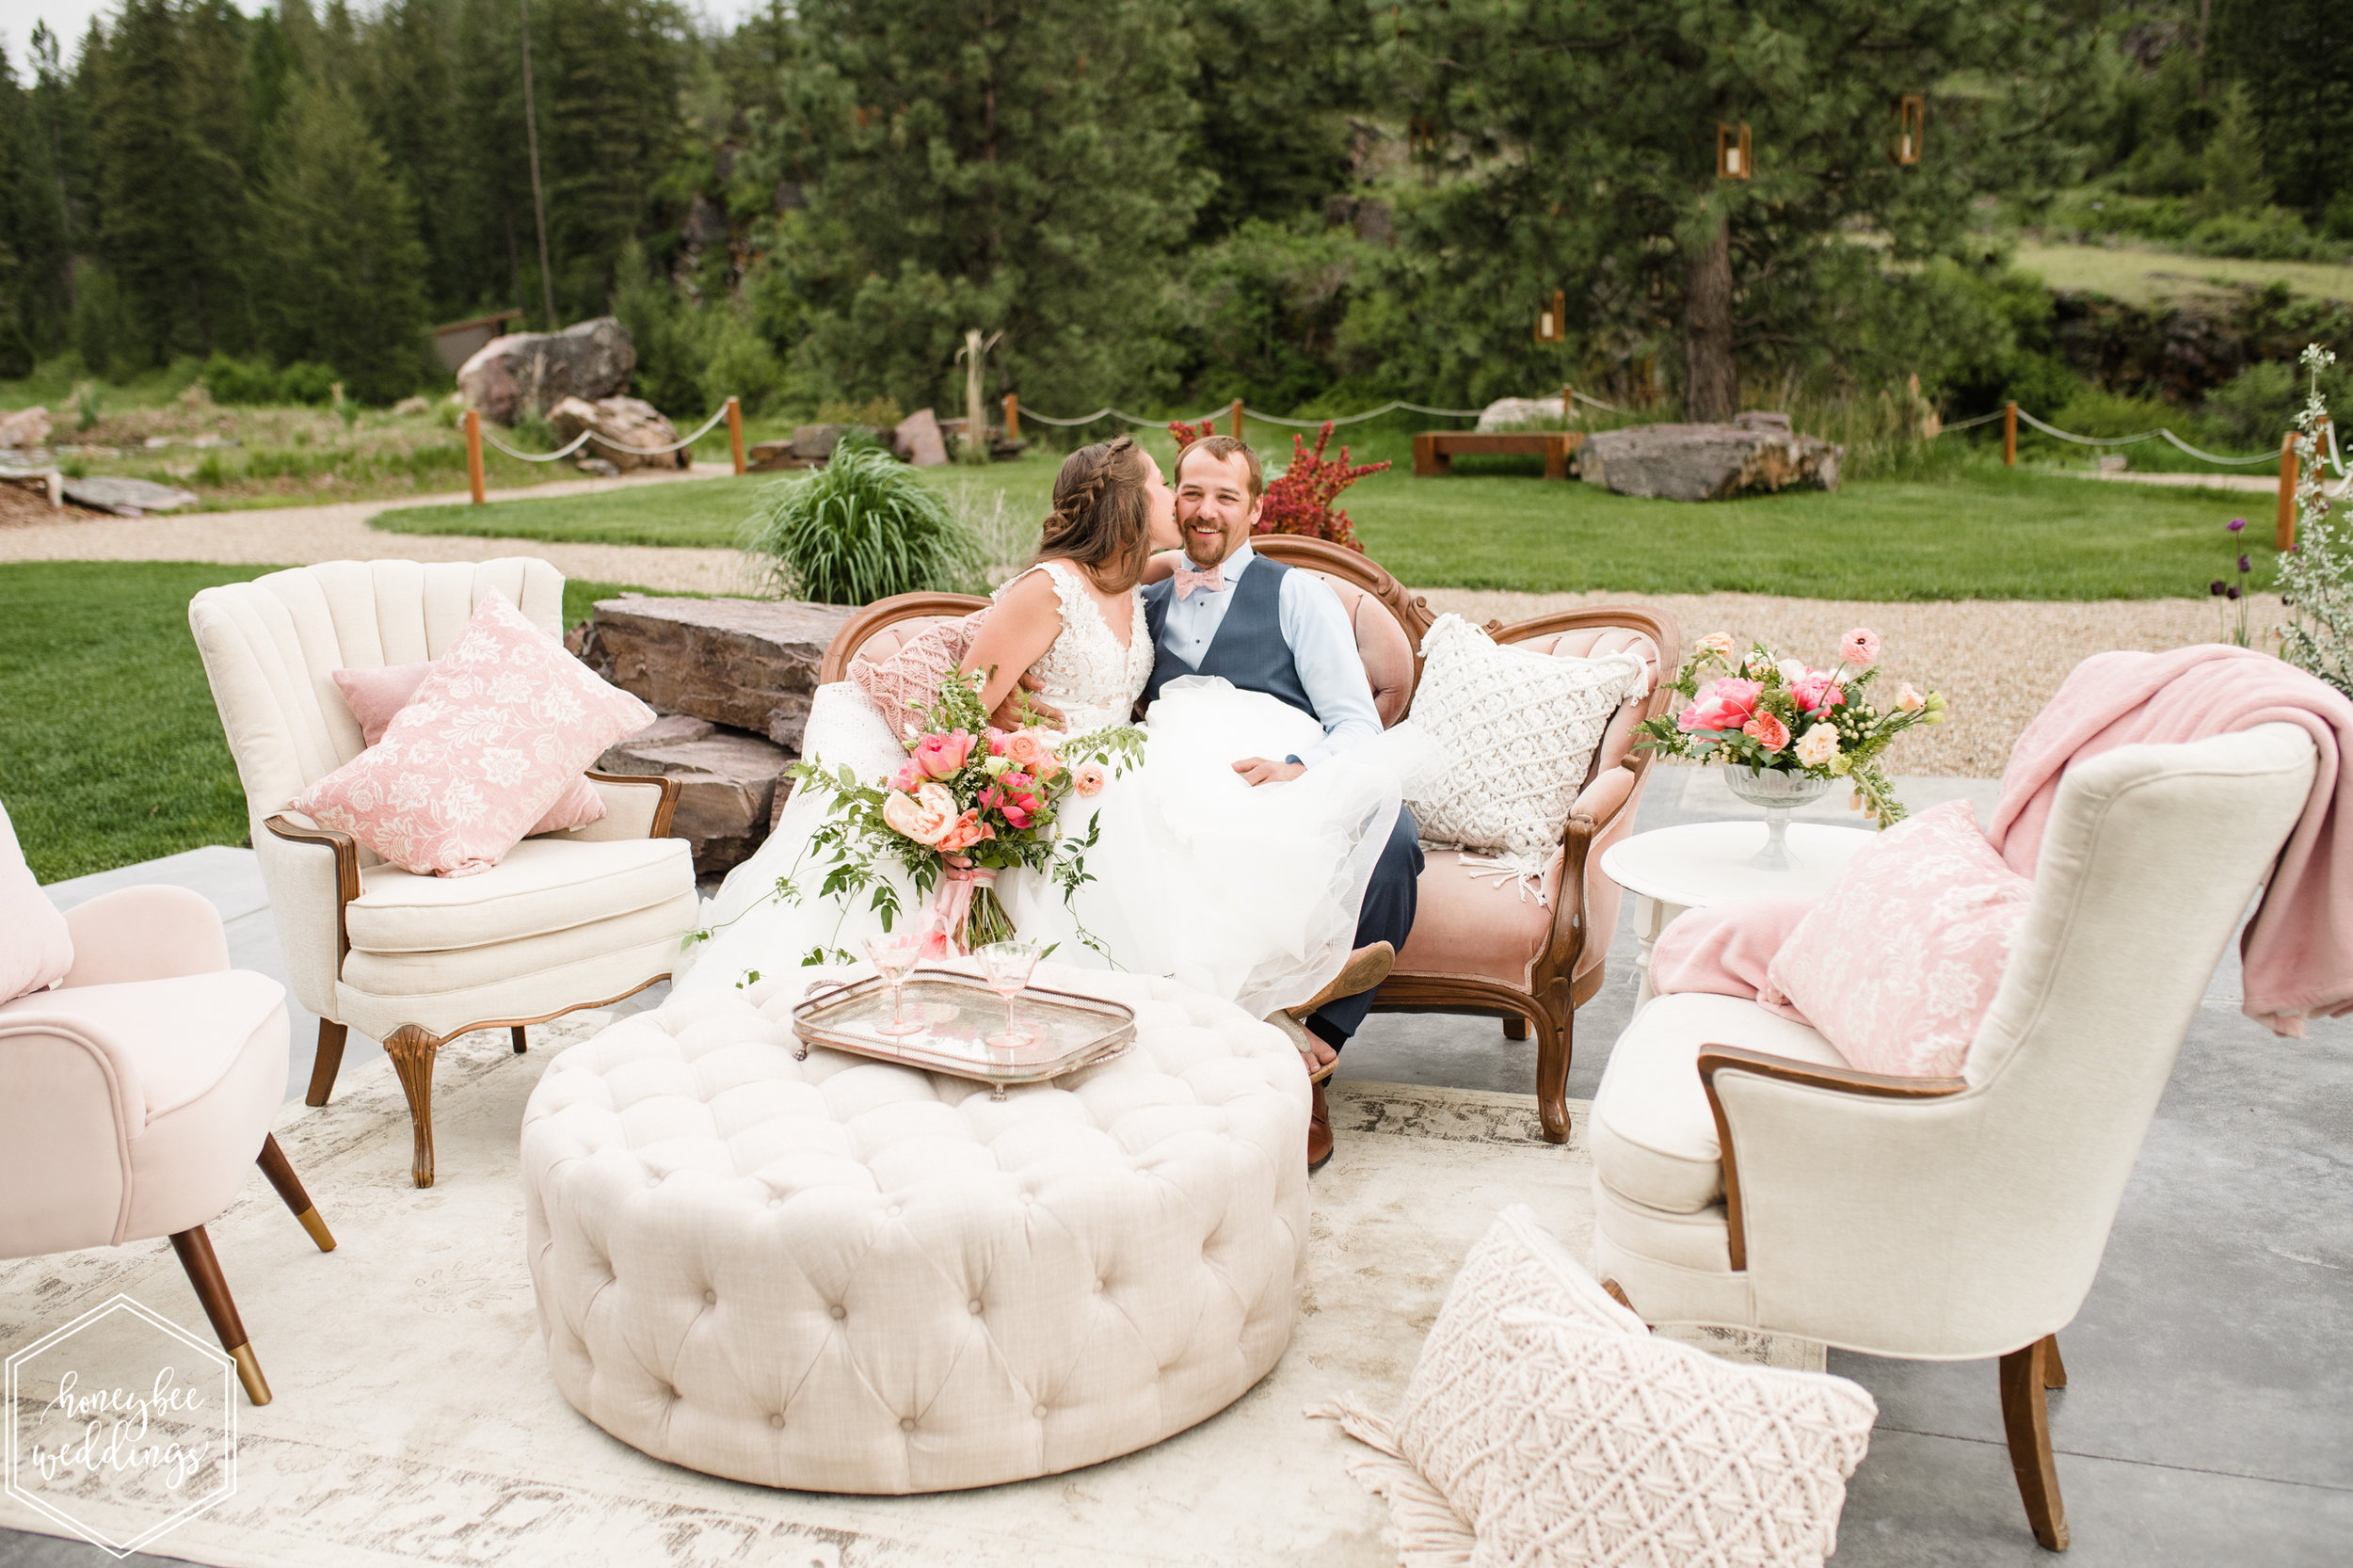 076Coral Mountain Wedding at White Raven_Honeybee Weddings_May 23, 2019-280.jpg